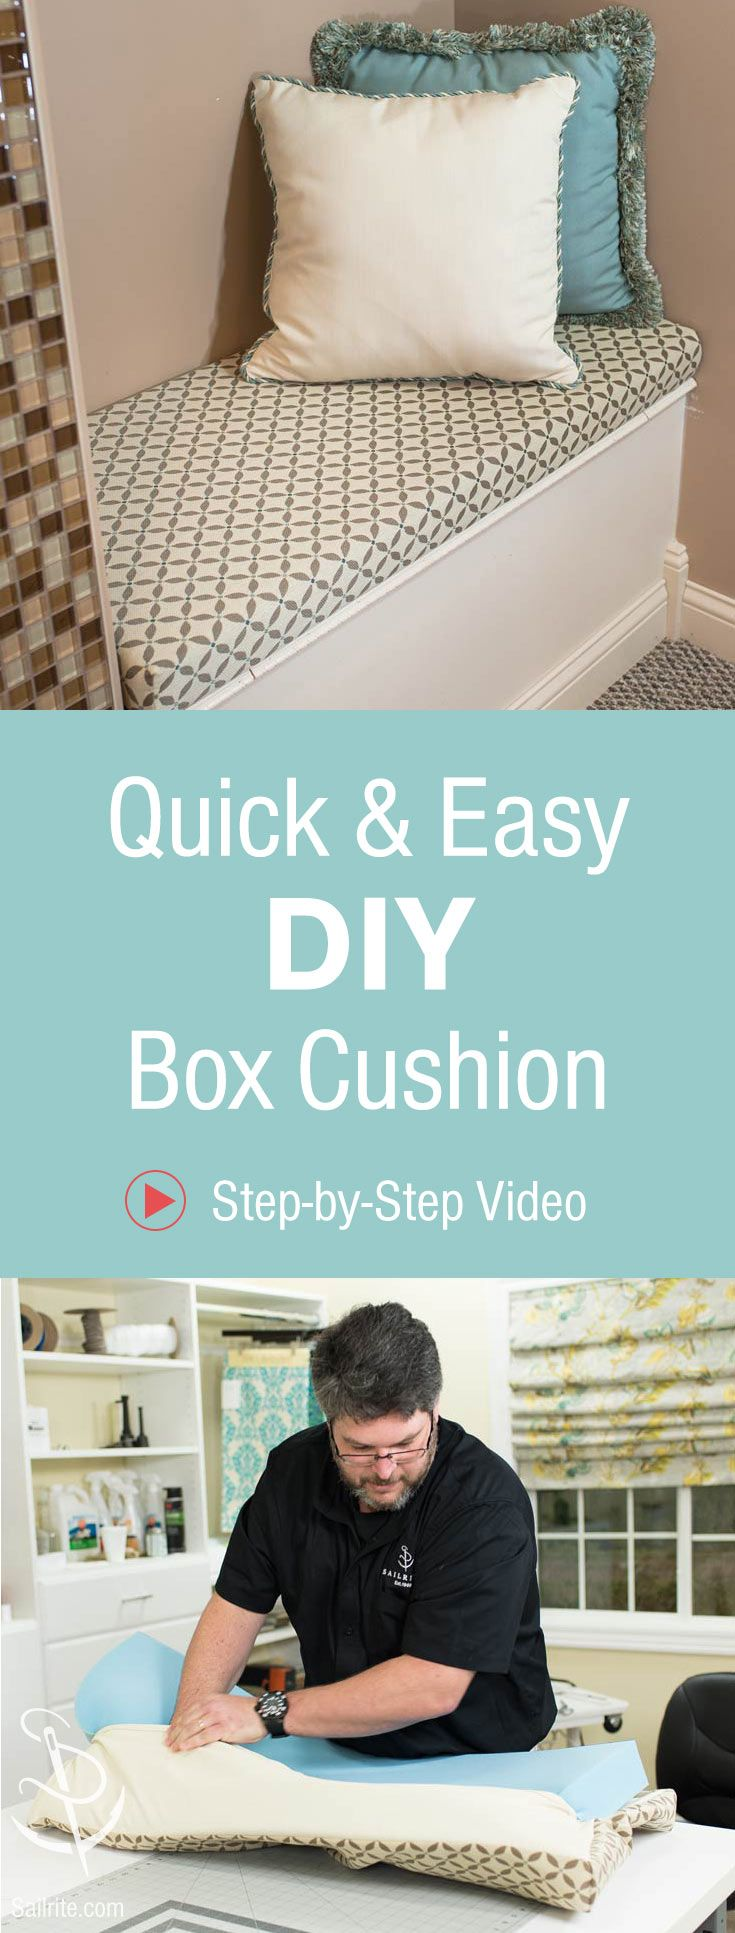 How To Make a Quick and Easy Box Cushion Video | Pinterest | Bench ...